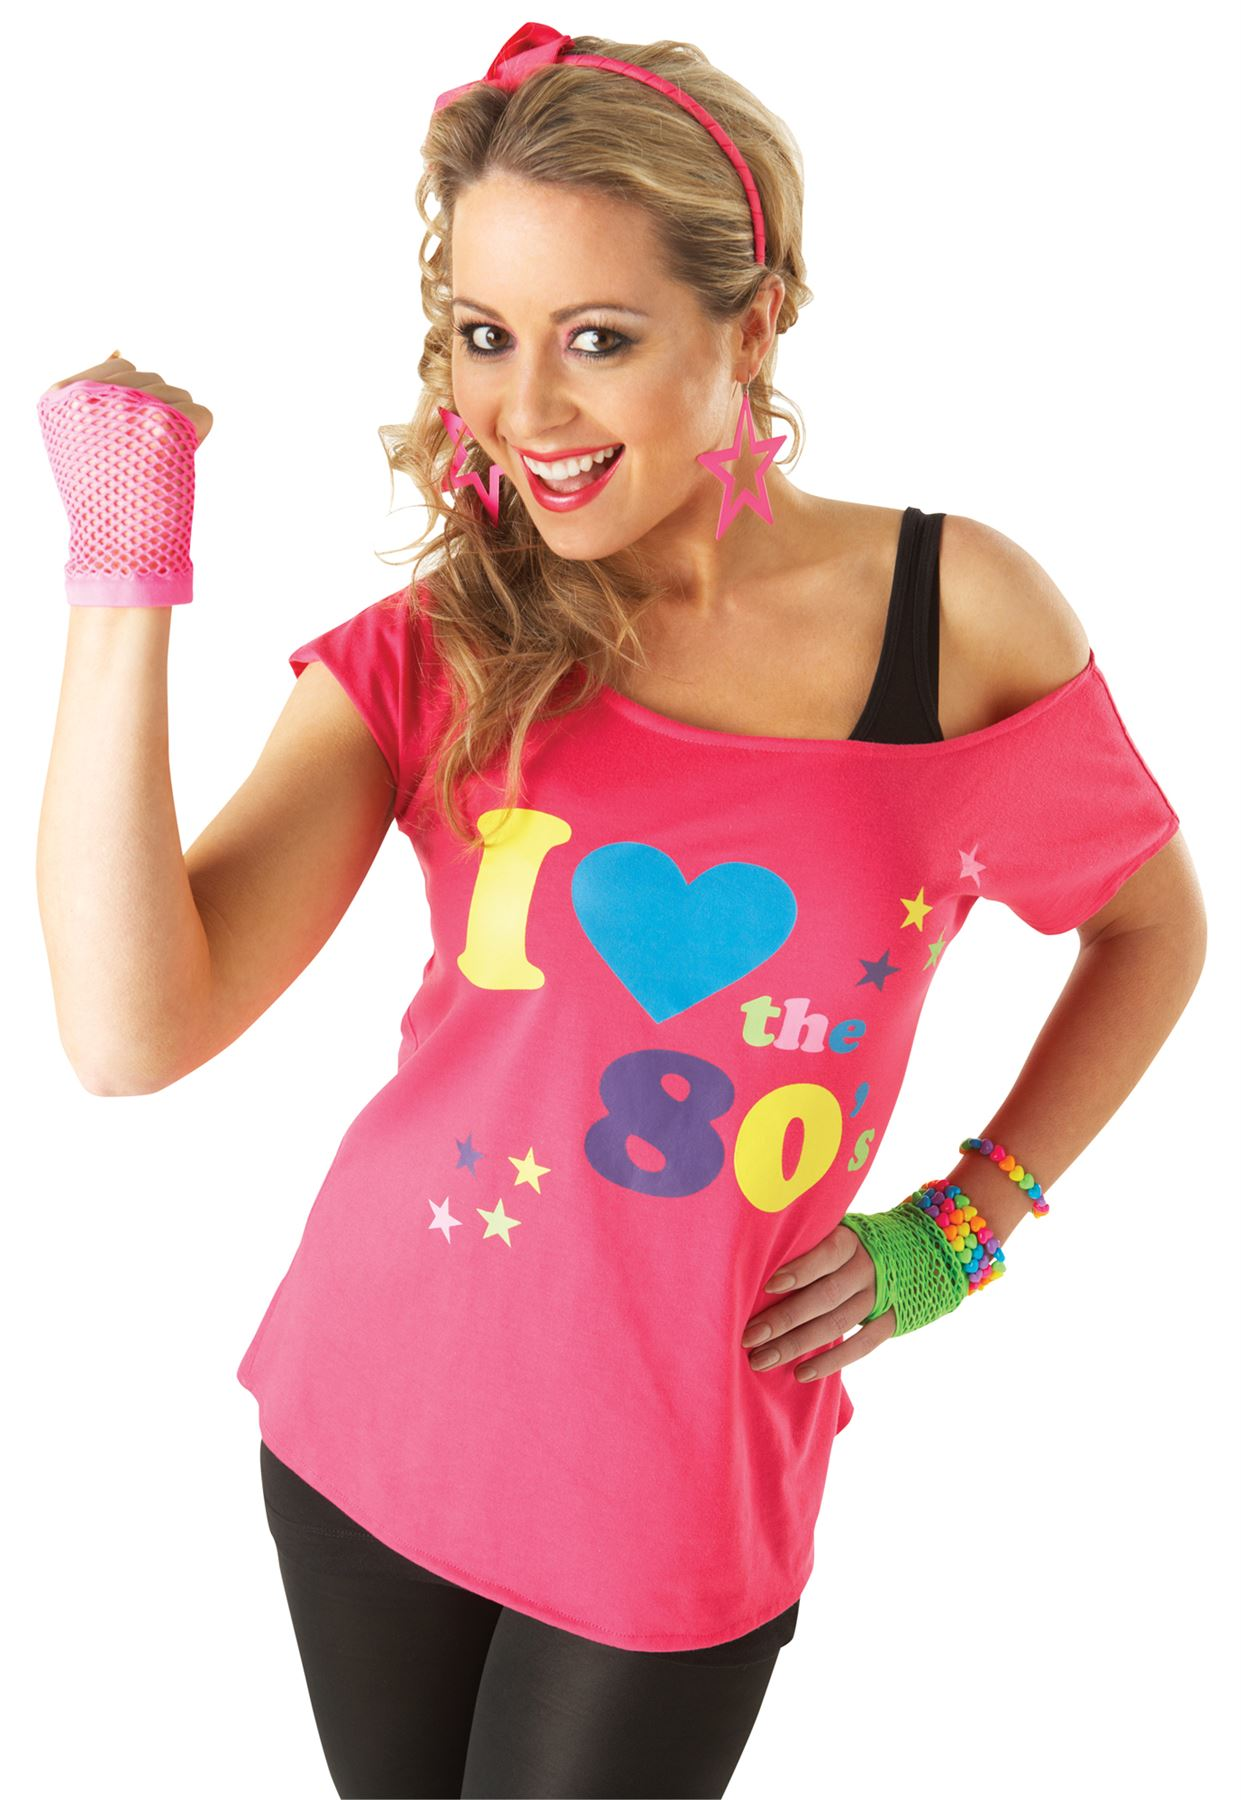 Dress code eighties - Ladies I Love The 80s T Shirt Fancy Dress Costume Neon Festival Womens Outfit